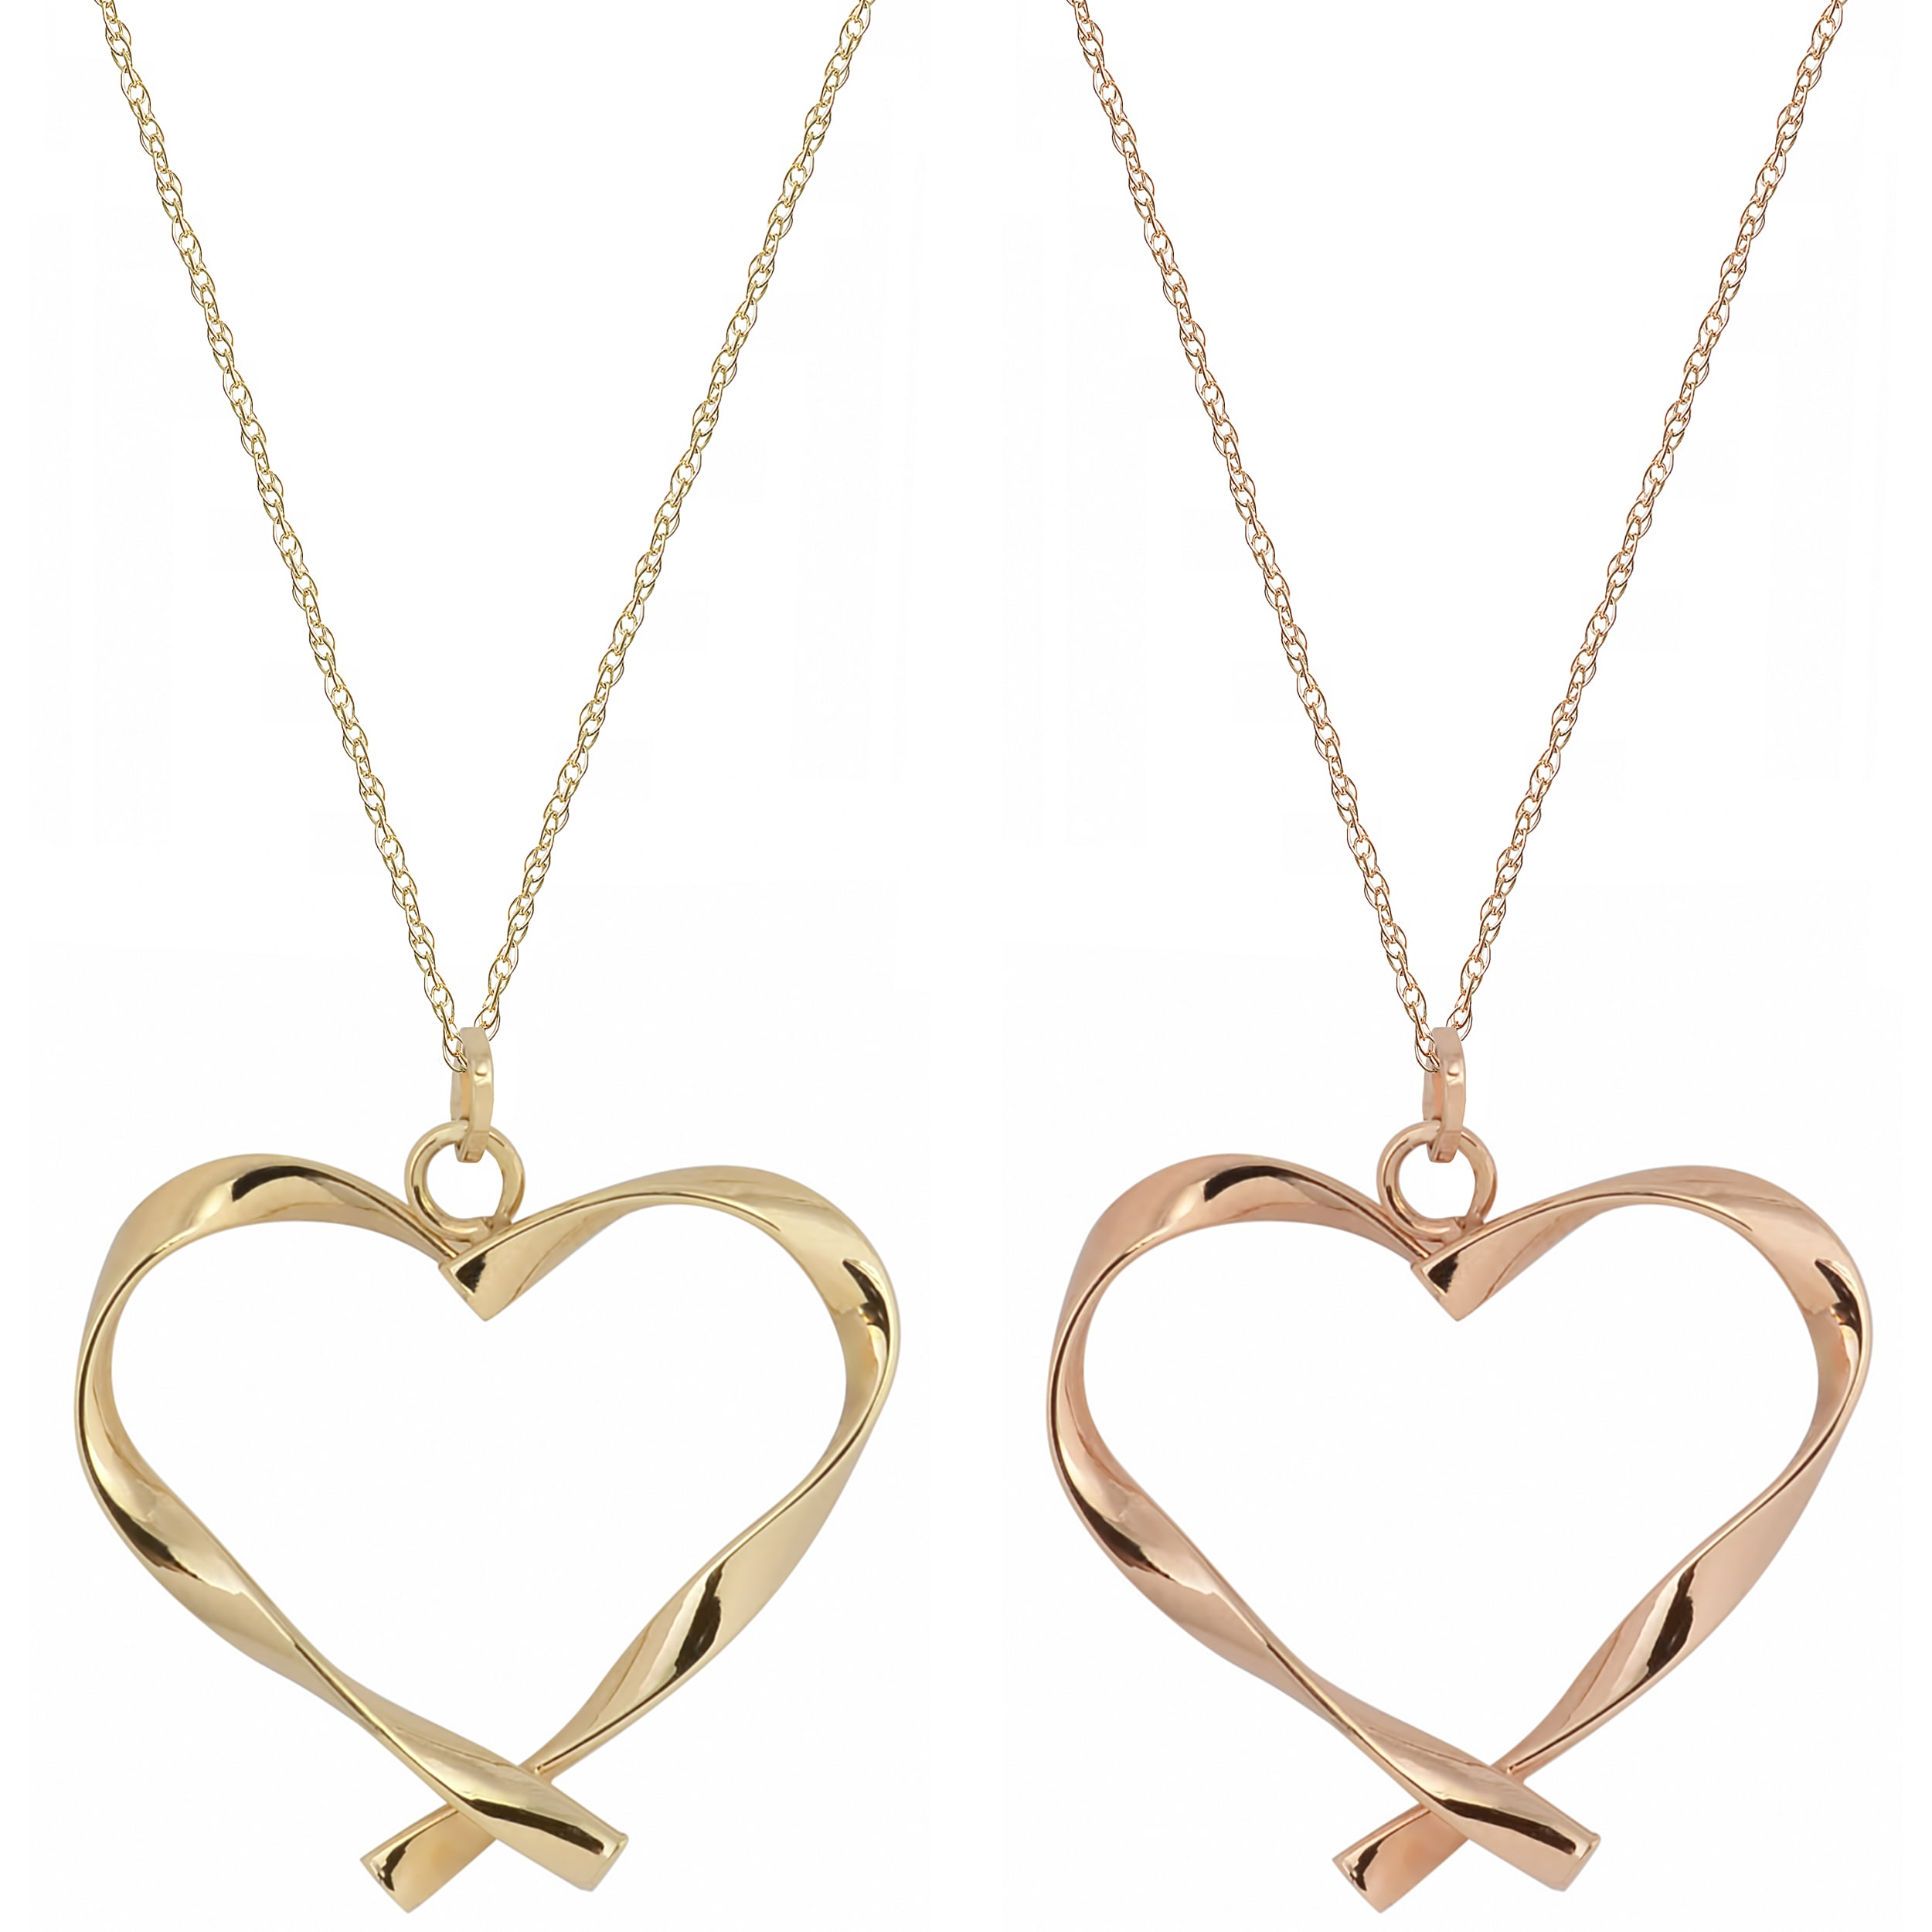 Fremada 10k Gold Twisted Heart Pendant on Delicate Rope Chain Necklace